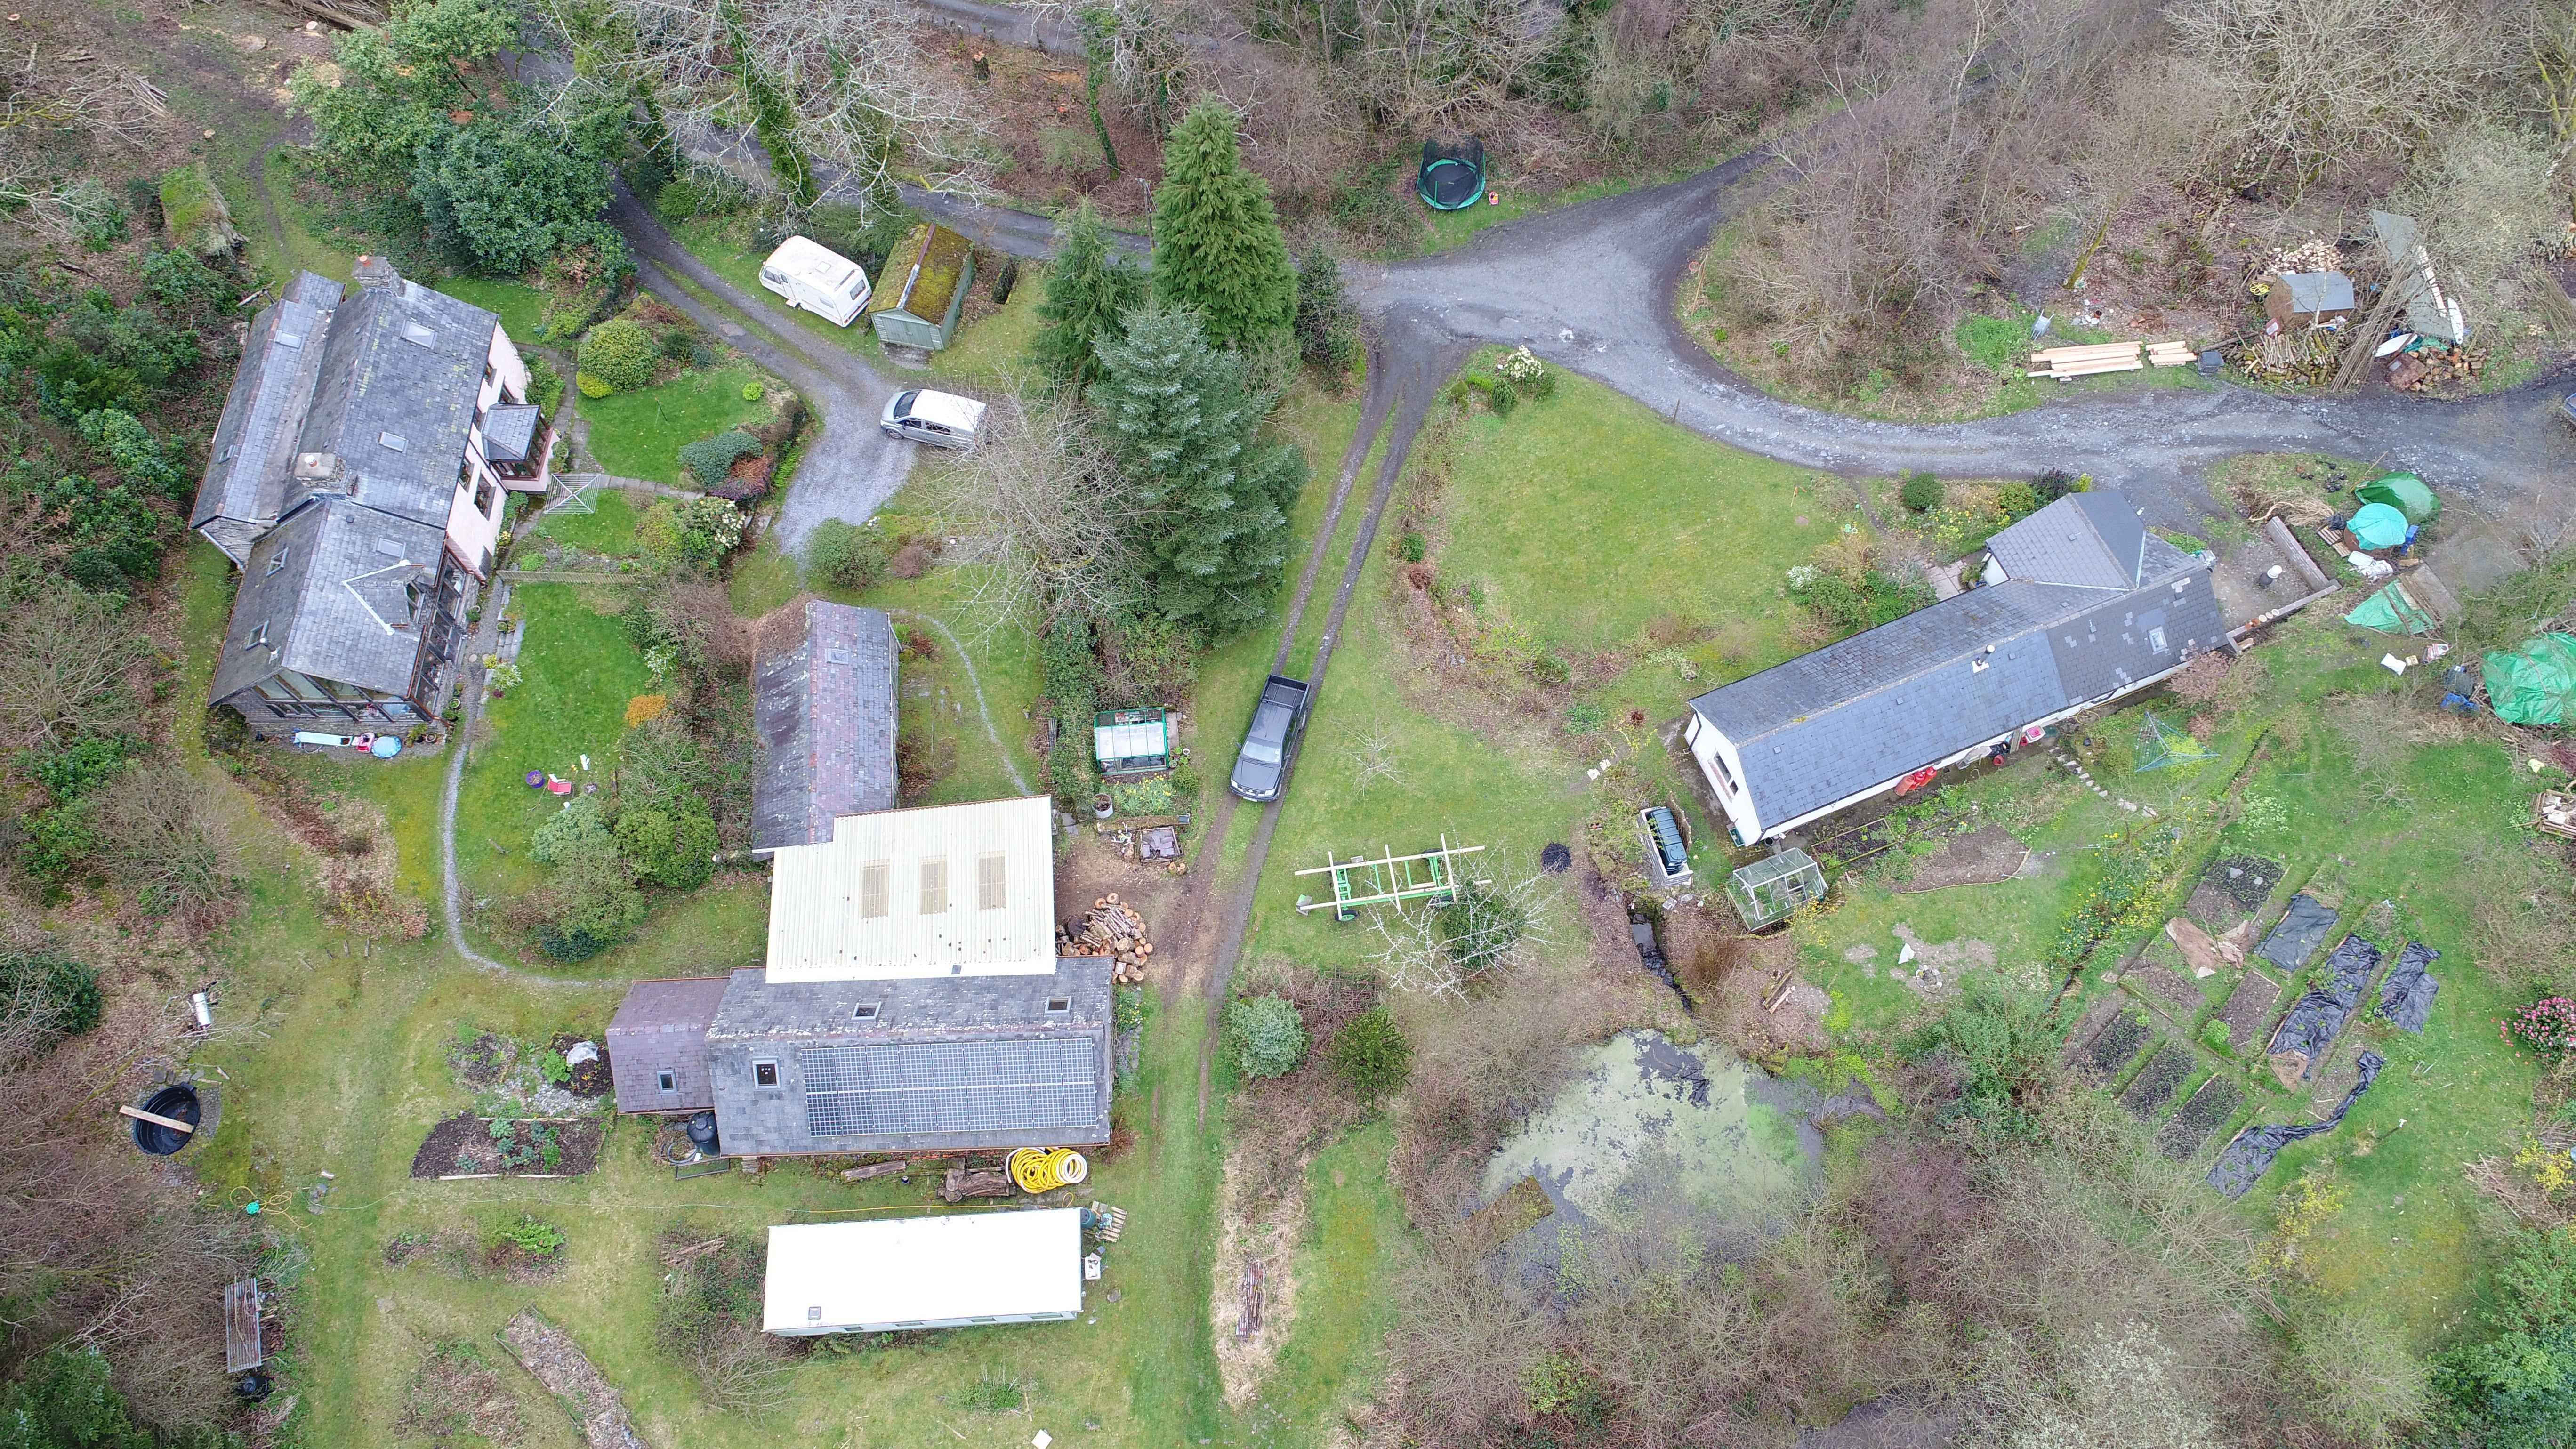 Aerial Drone Architectural Photography and Professional Building Surveys, North Wales, Mid Wales, West Wales.